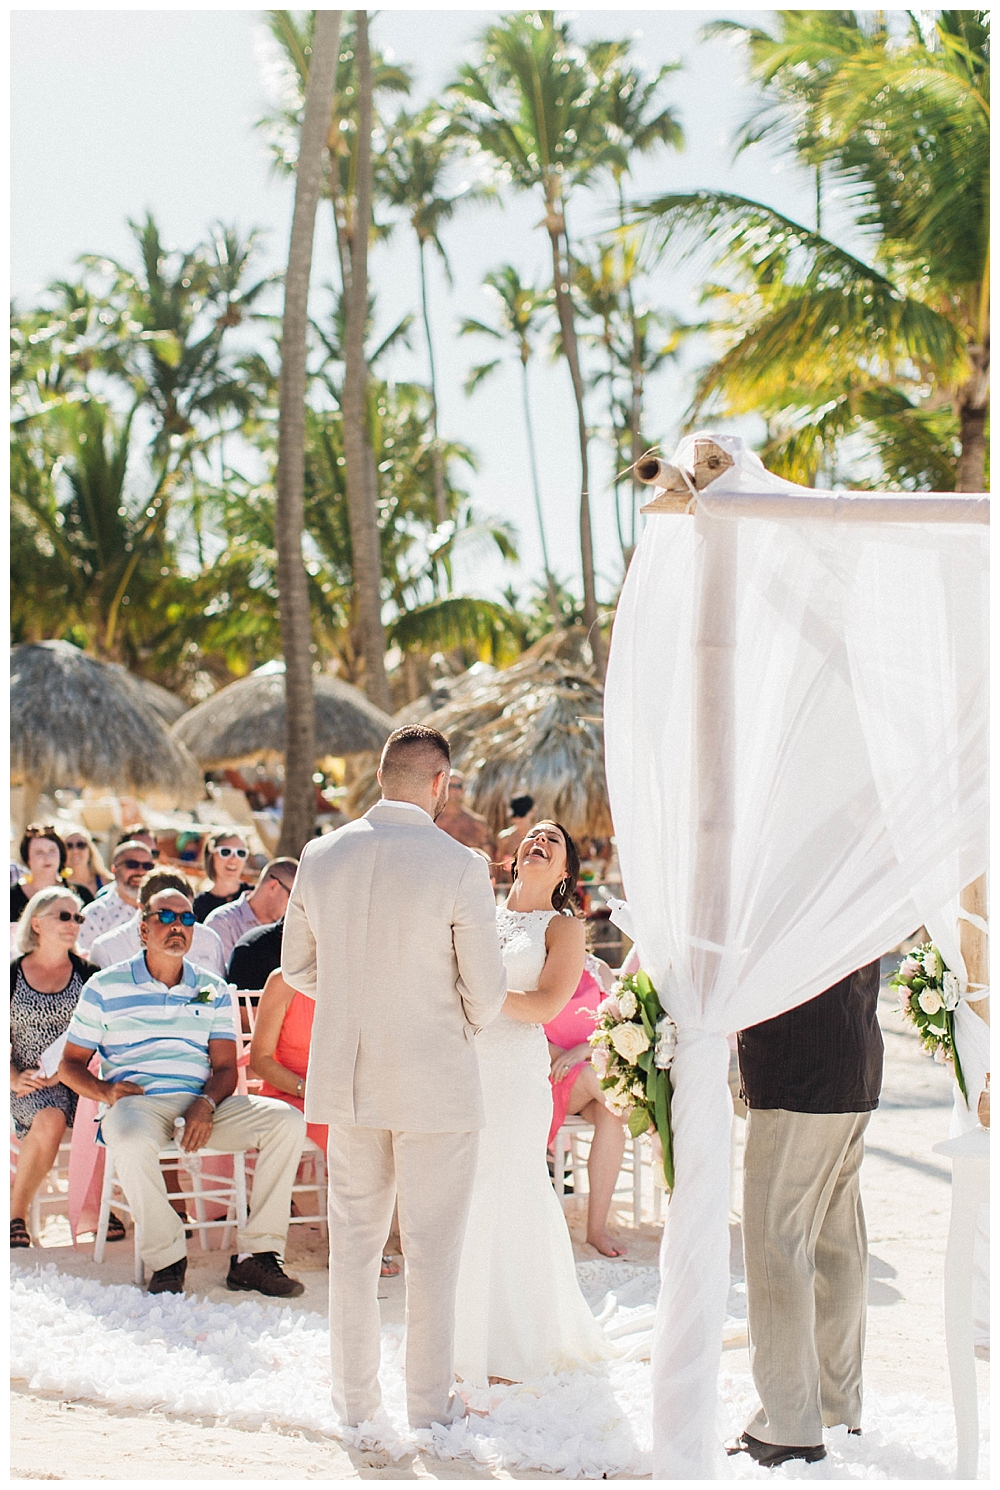 christinakarstphotography_dominicanrepublicwedding-114.jpg